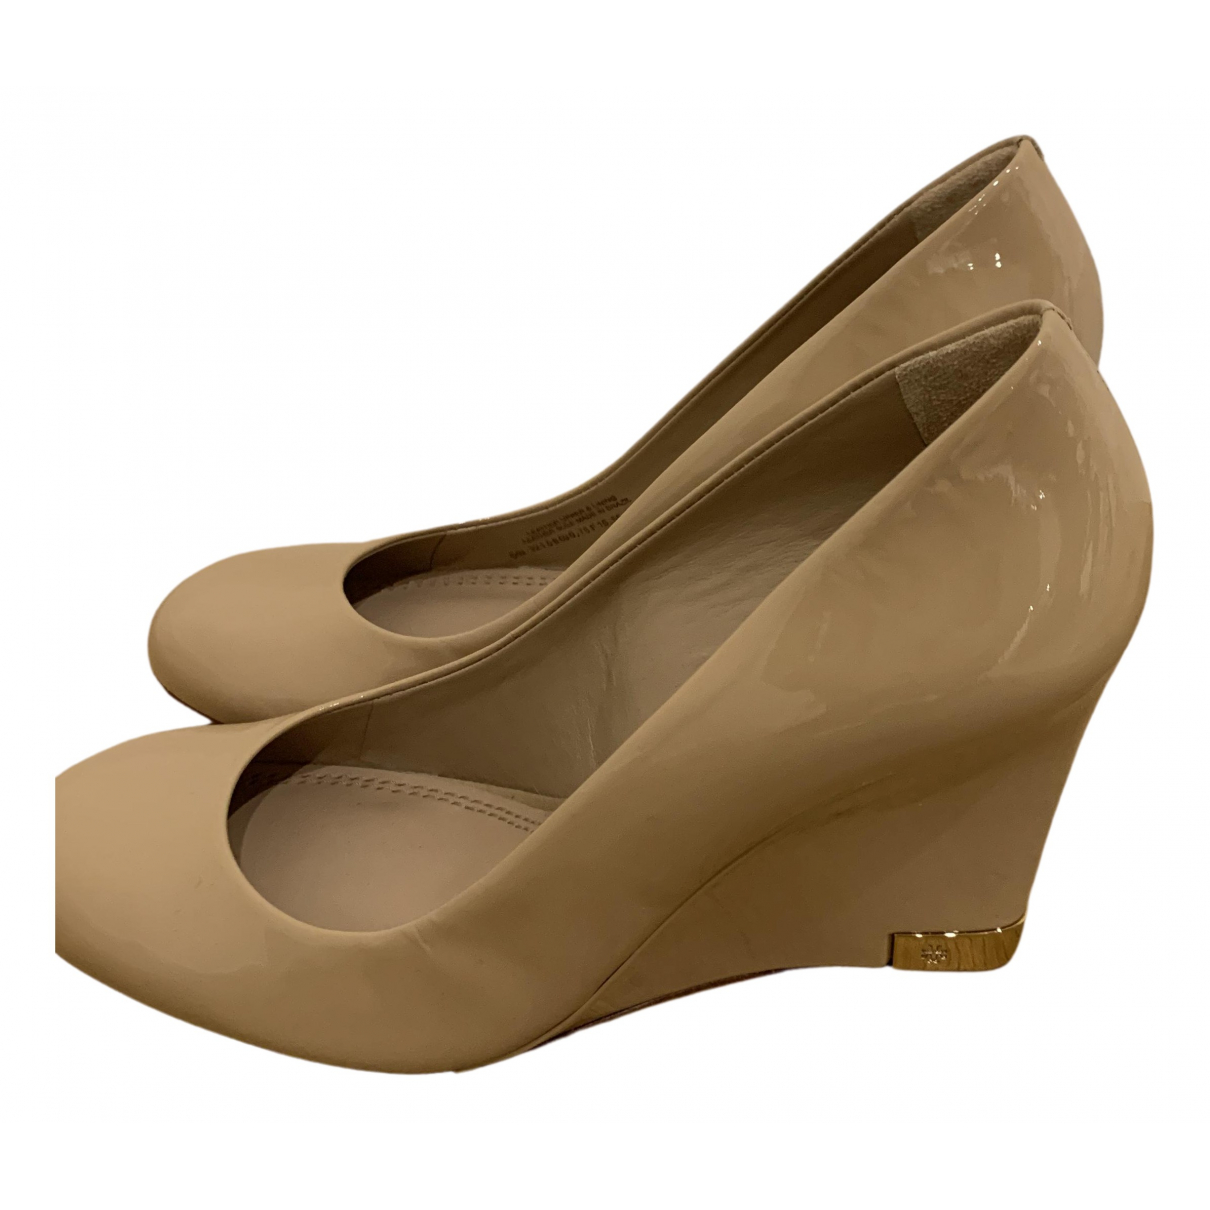 Tory Burch N Beige Patent leather Heels for Women 7.5 US